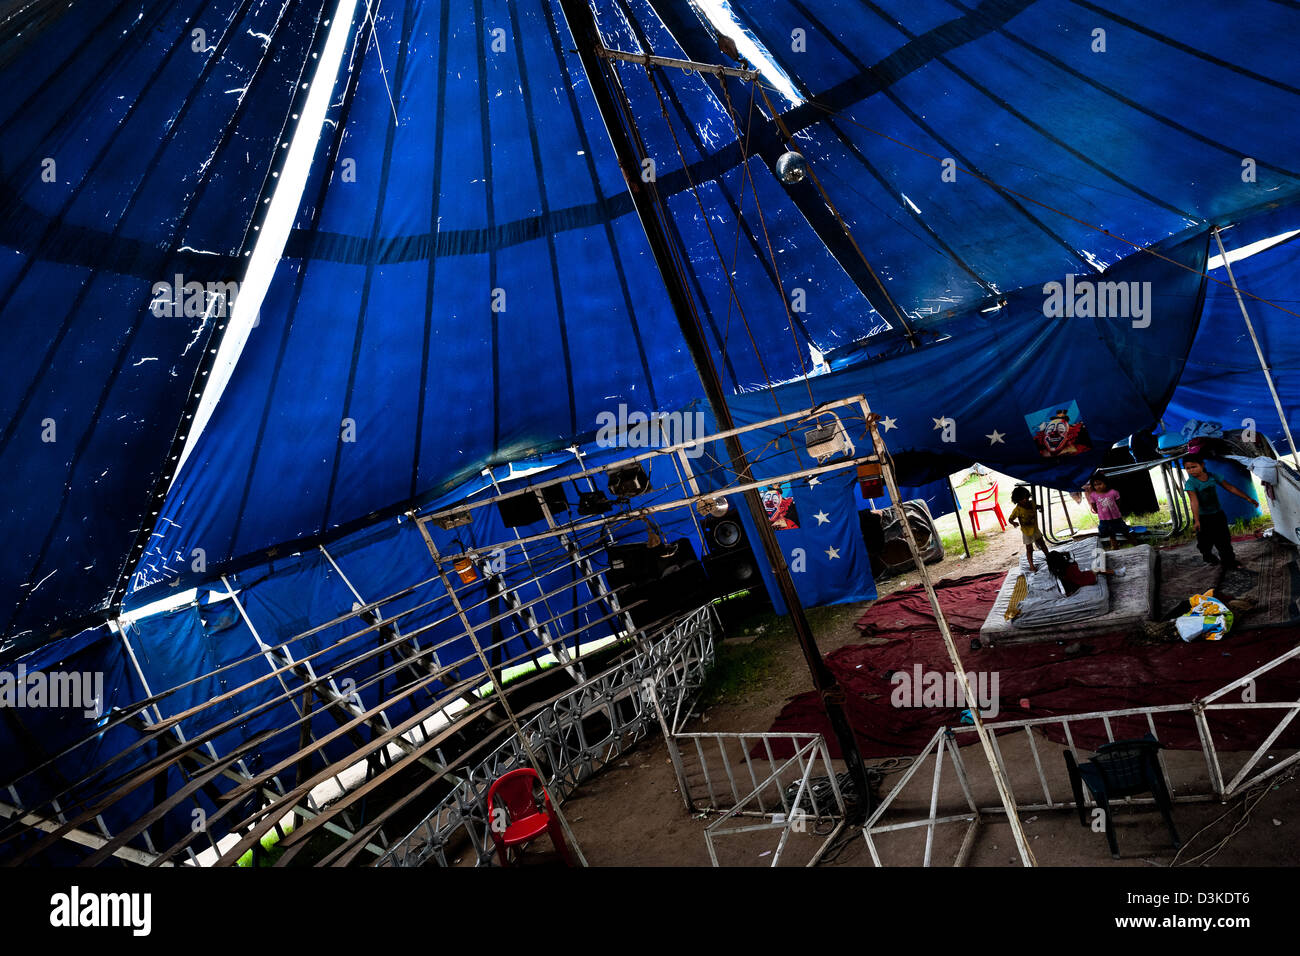 Salvadorean children play in the empty tent of the Circo Brasilia, a family run circus travelling in Central America. - Stock Image